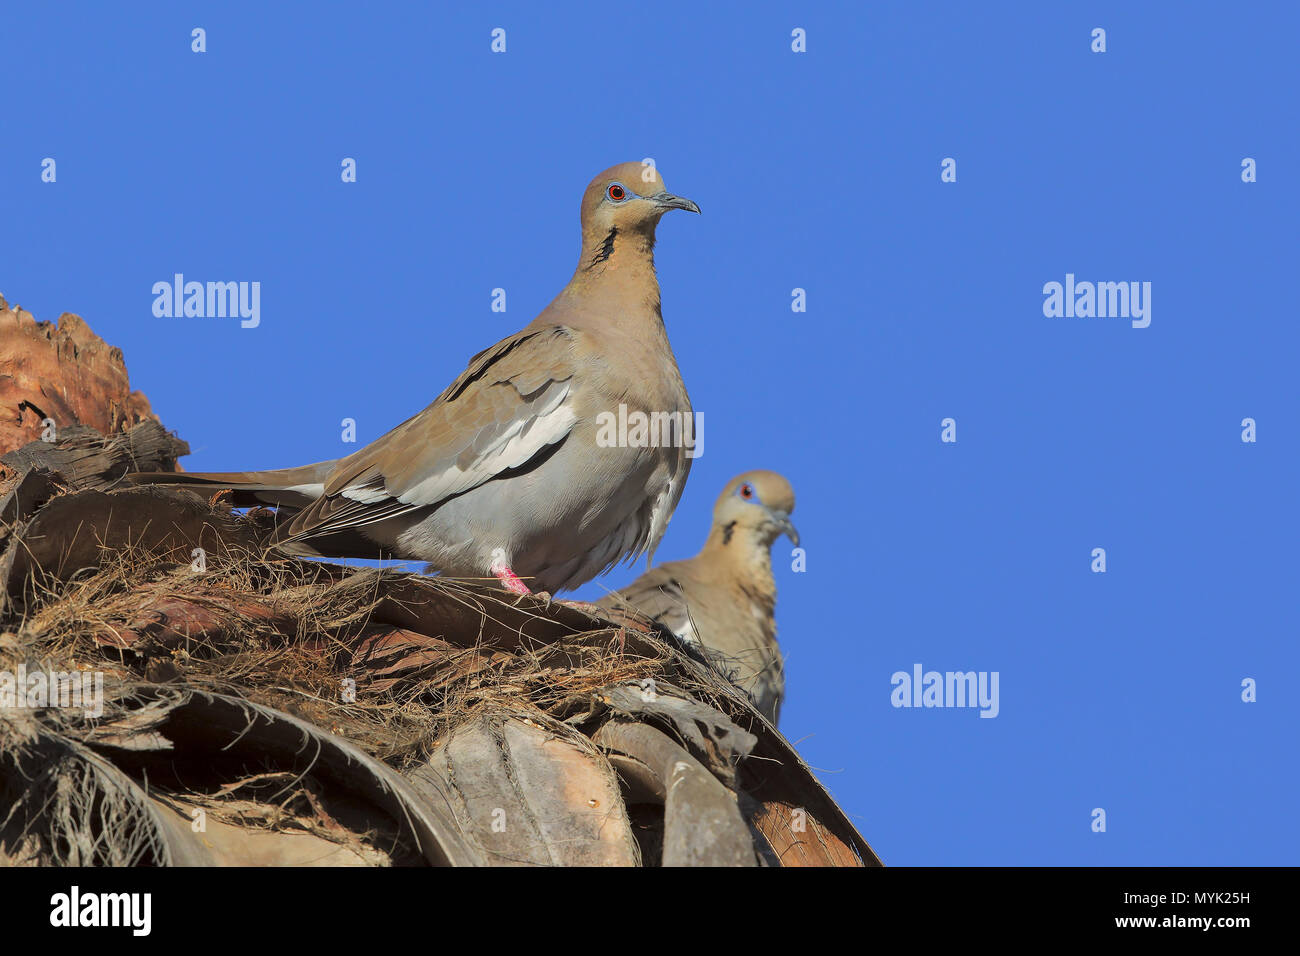 White-winged dove - Stock Image